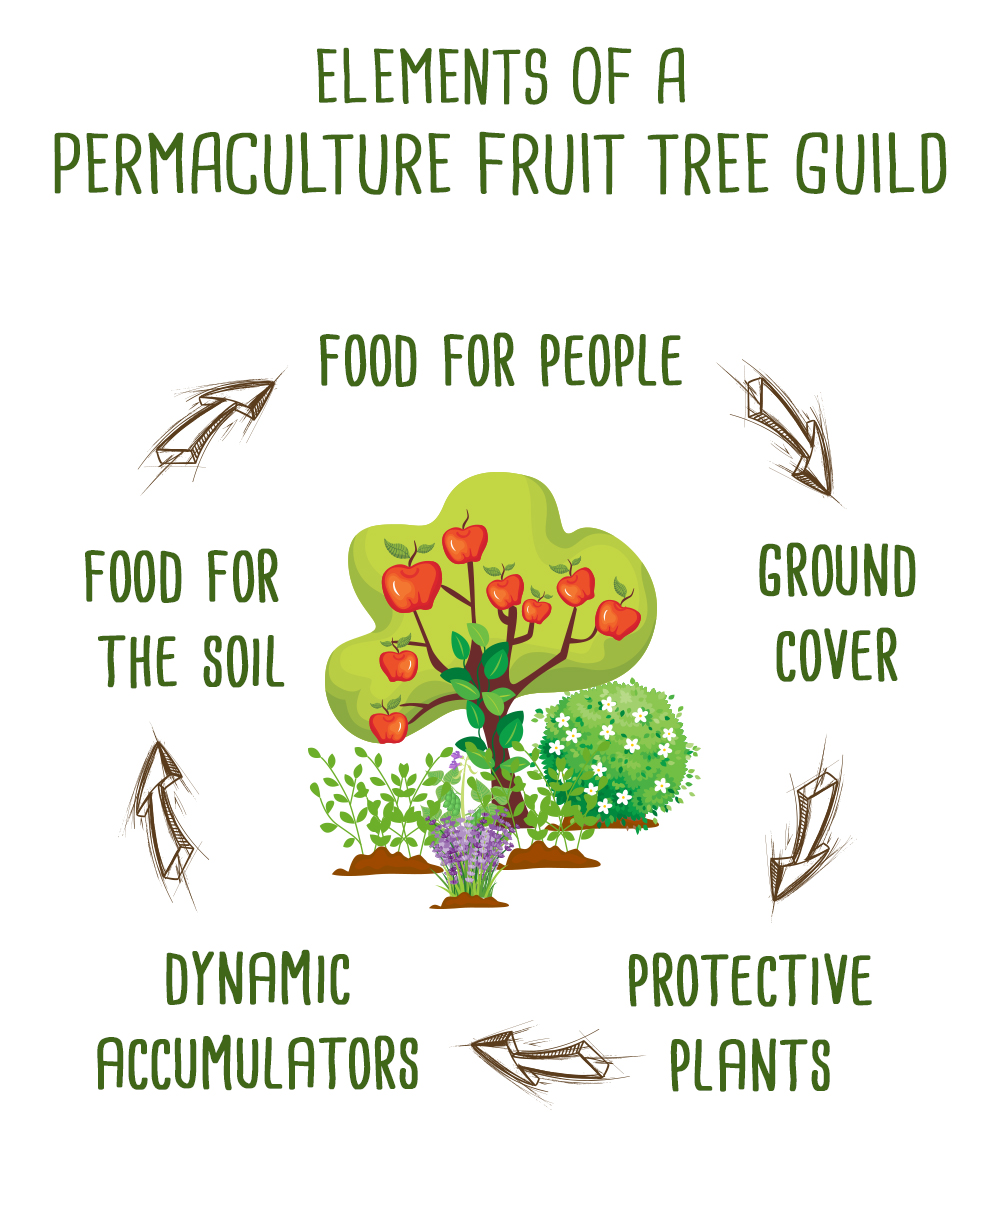 permaculture fruit tree guilds